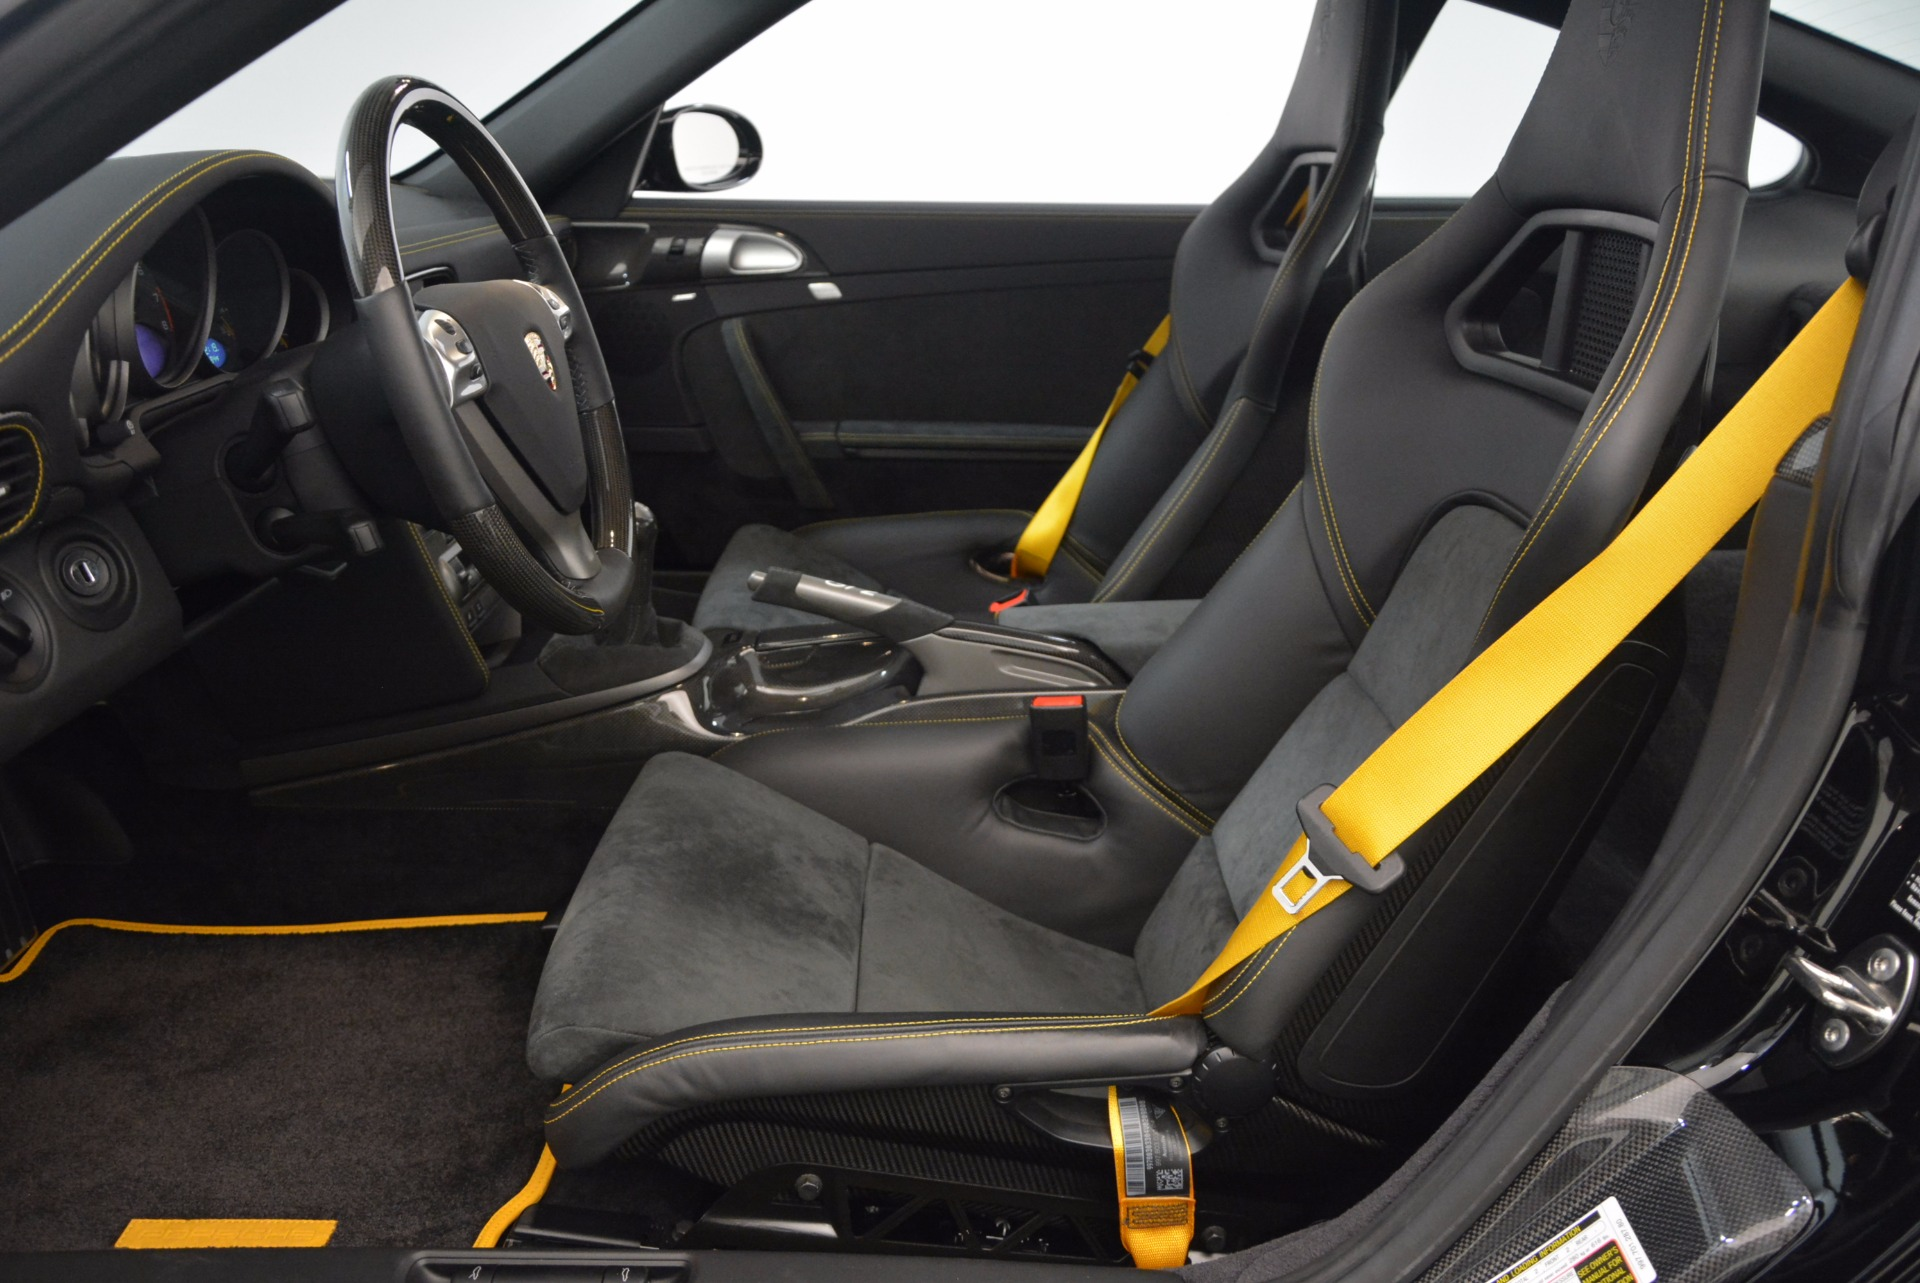 Used 2008 Porsche 911 GT2 For Sale In Greenwich, CT 1400_p14